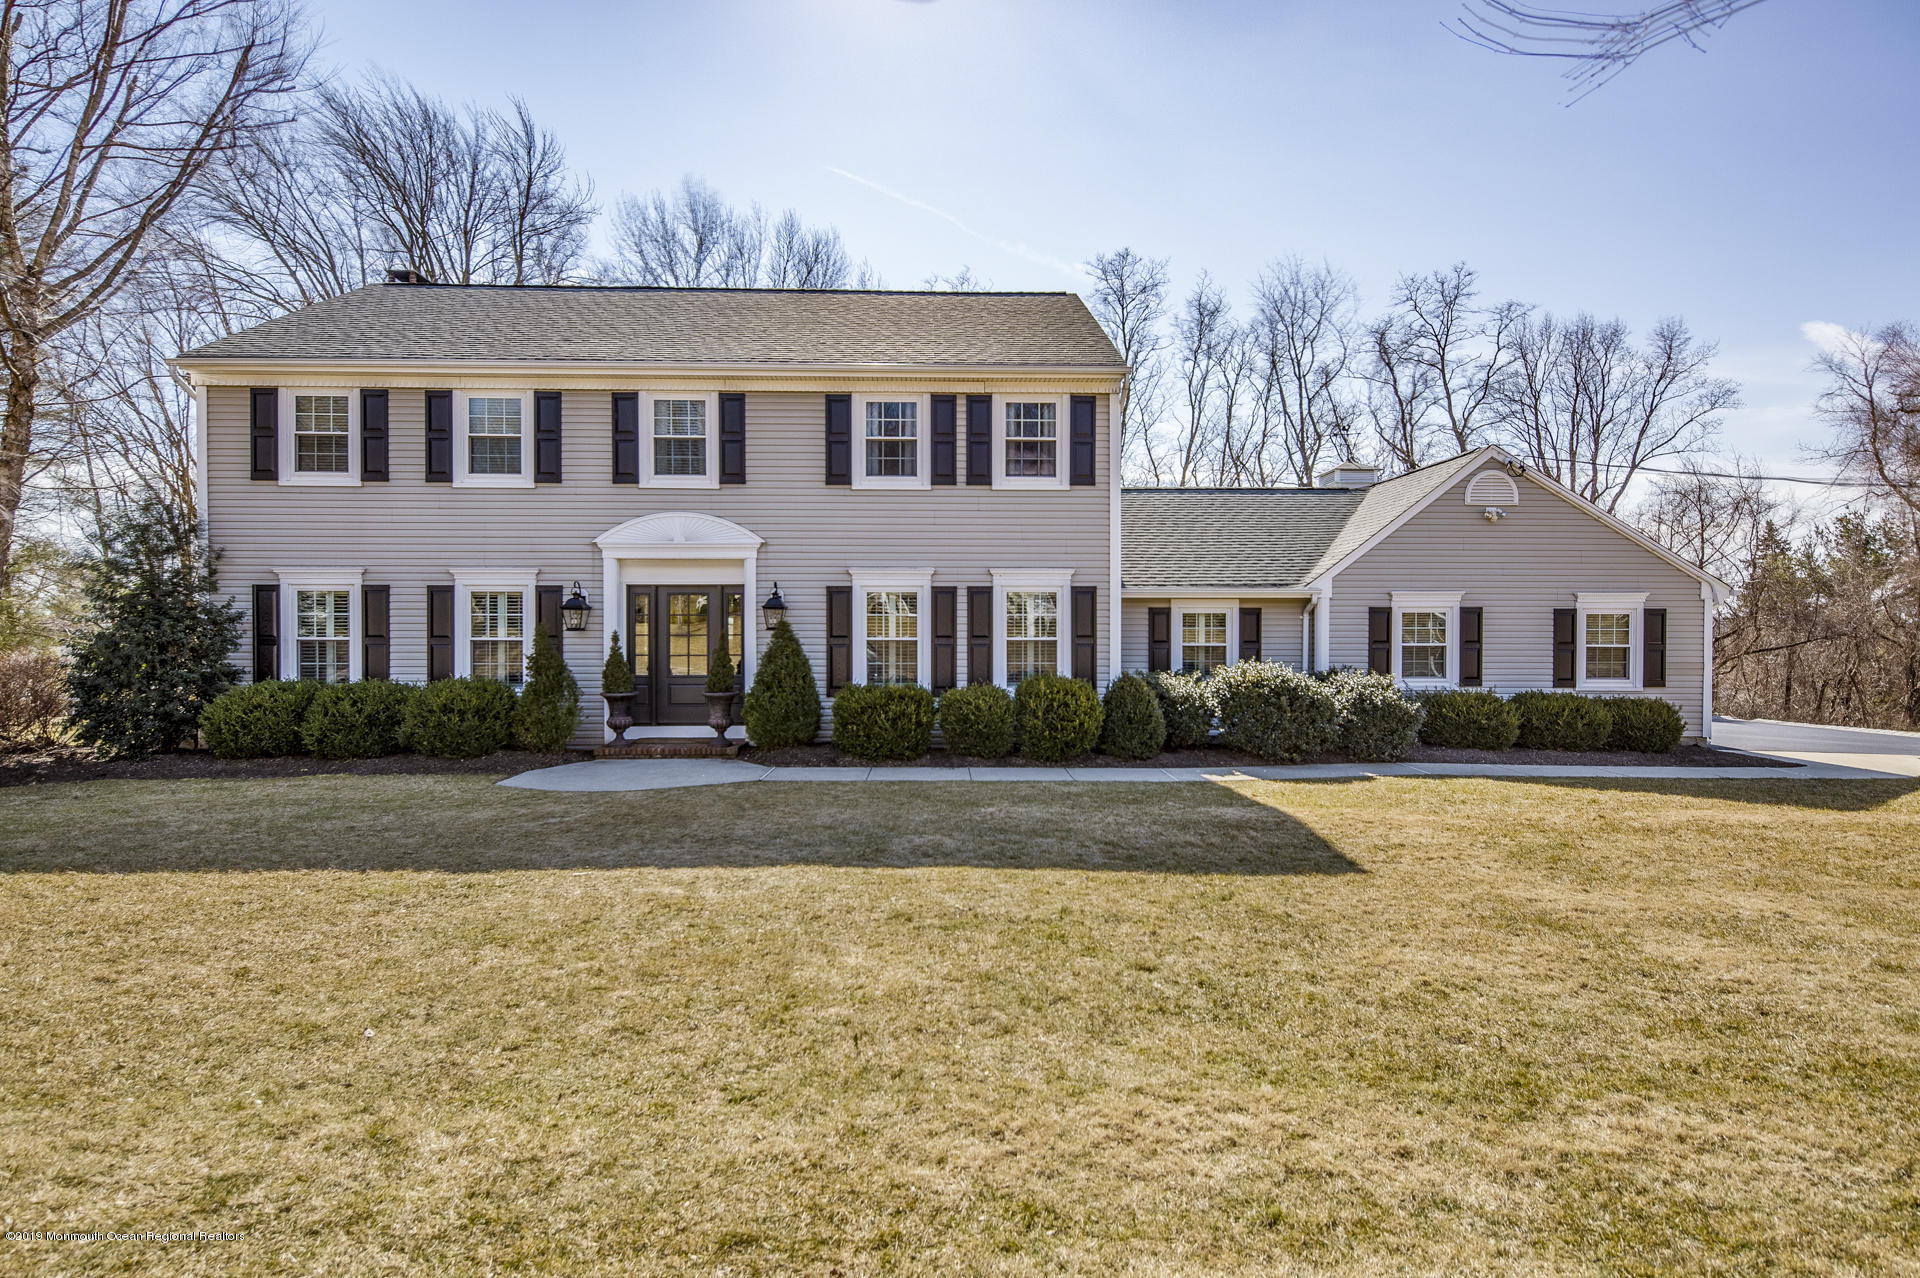 Photo of 3 Mohican Drive, Middletown, NJ 07748